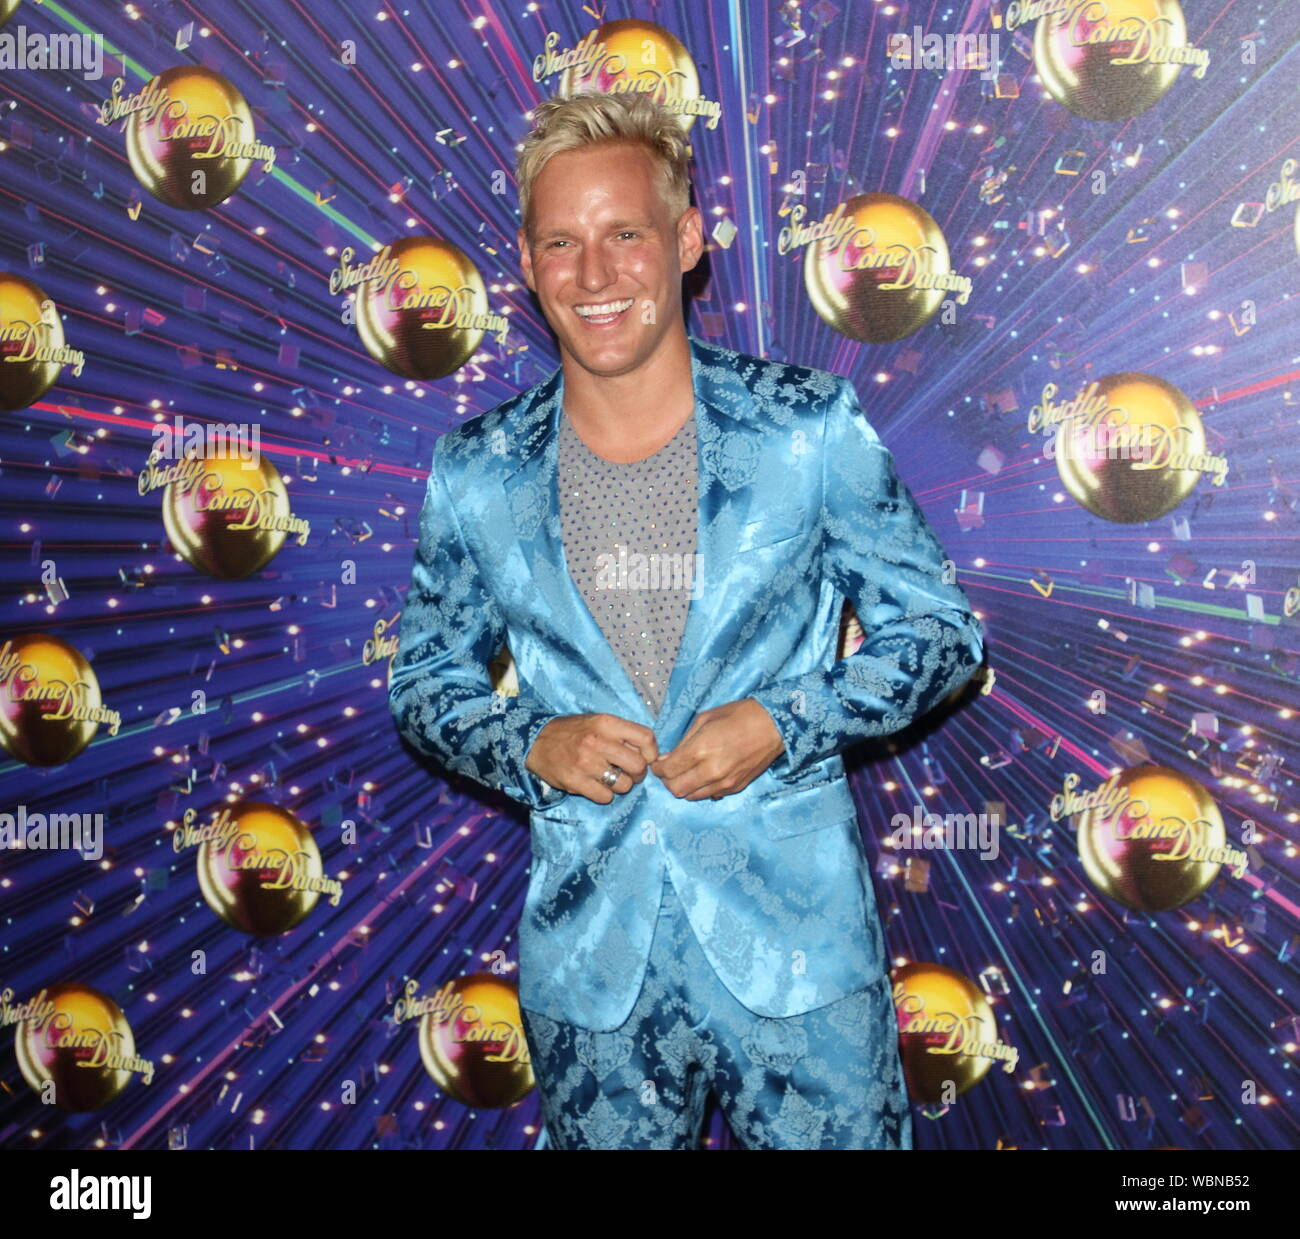 London, UK. 26th Aug, 2019. Jamie Laing at the Strictly Come Dancing Launch at BBC Broadcasting House in London. Credit: SOPA Images Limited/Alamy Live News Stock Photo